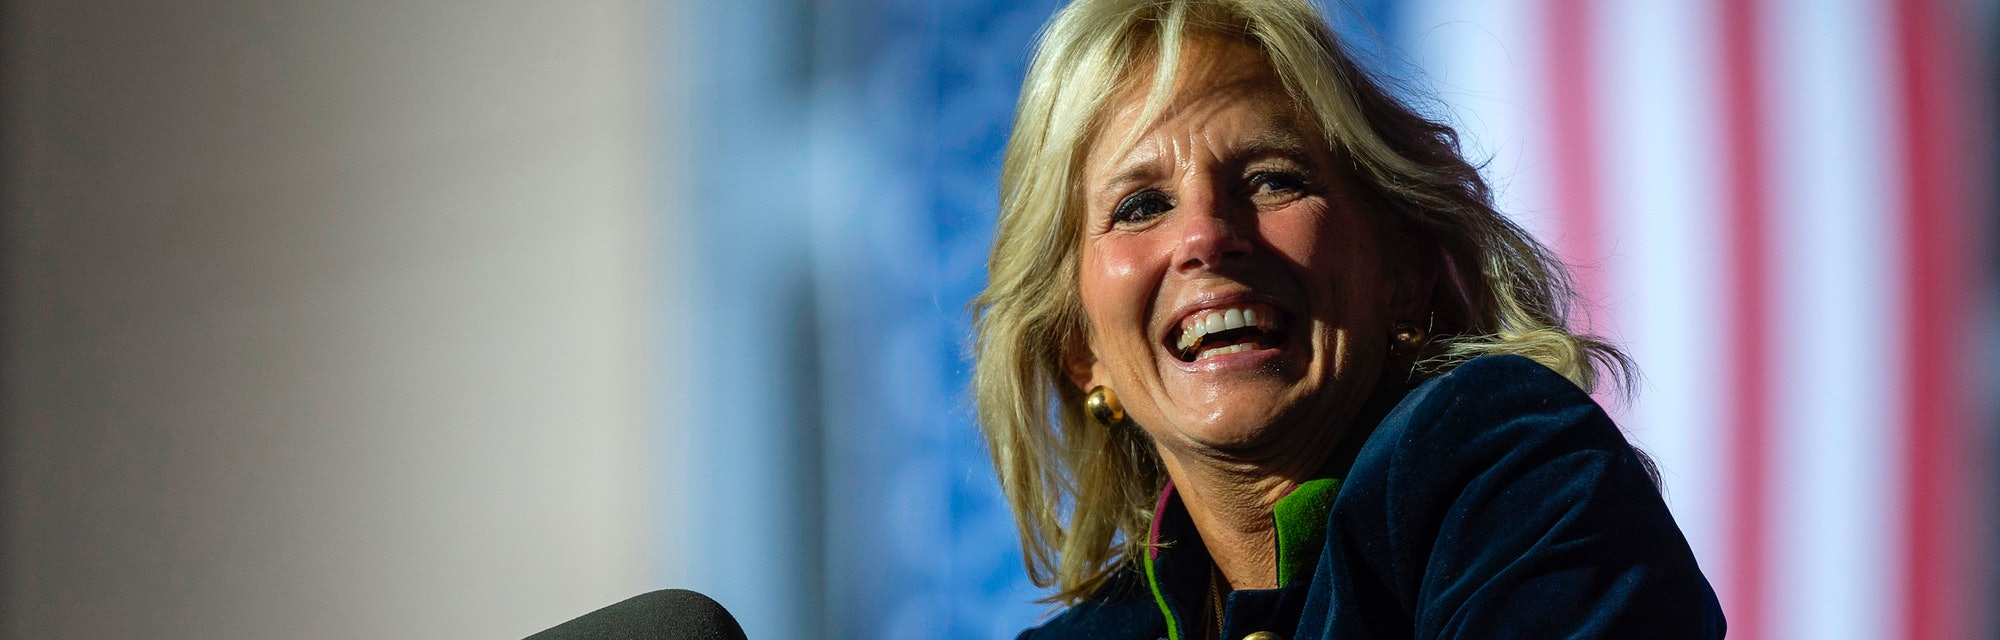 Jill Biden has revealed that her first White House initiative will be to relaunch Joining Forces, a program first launched under the Obama administration to support military personnel, veterans, and their families.